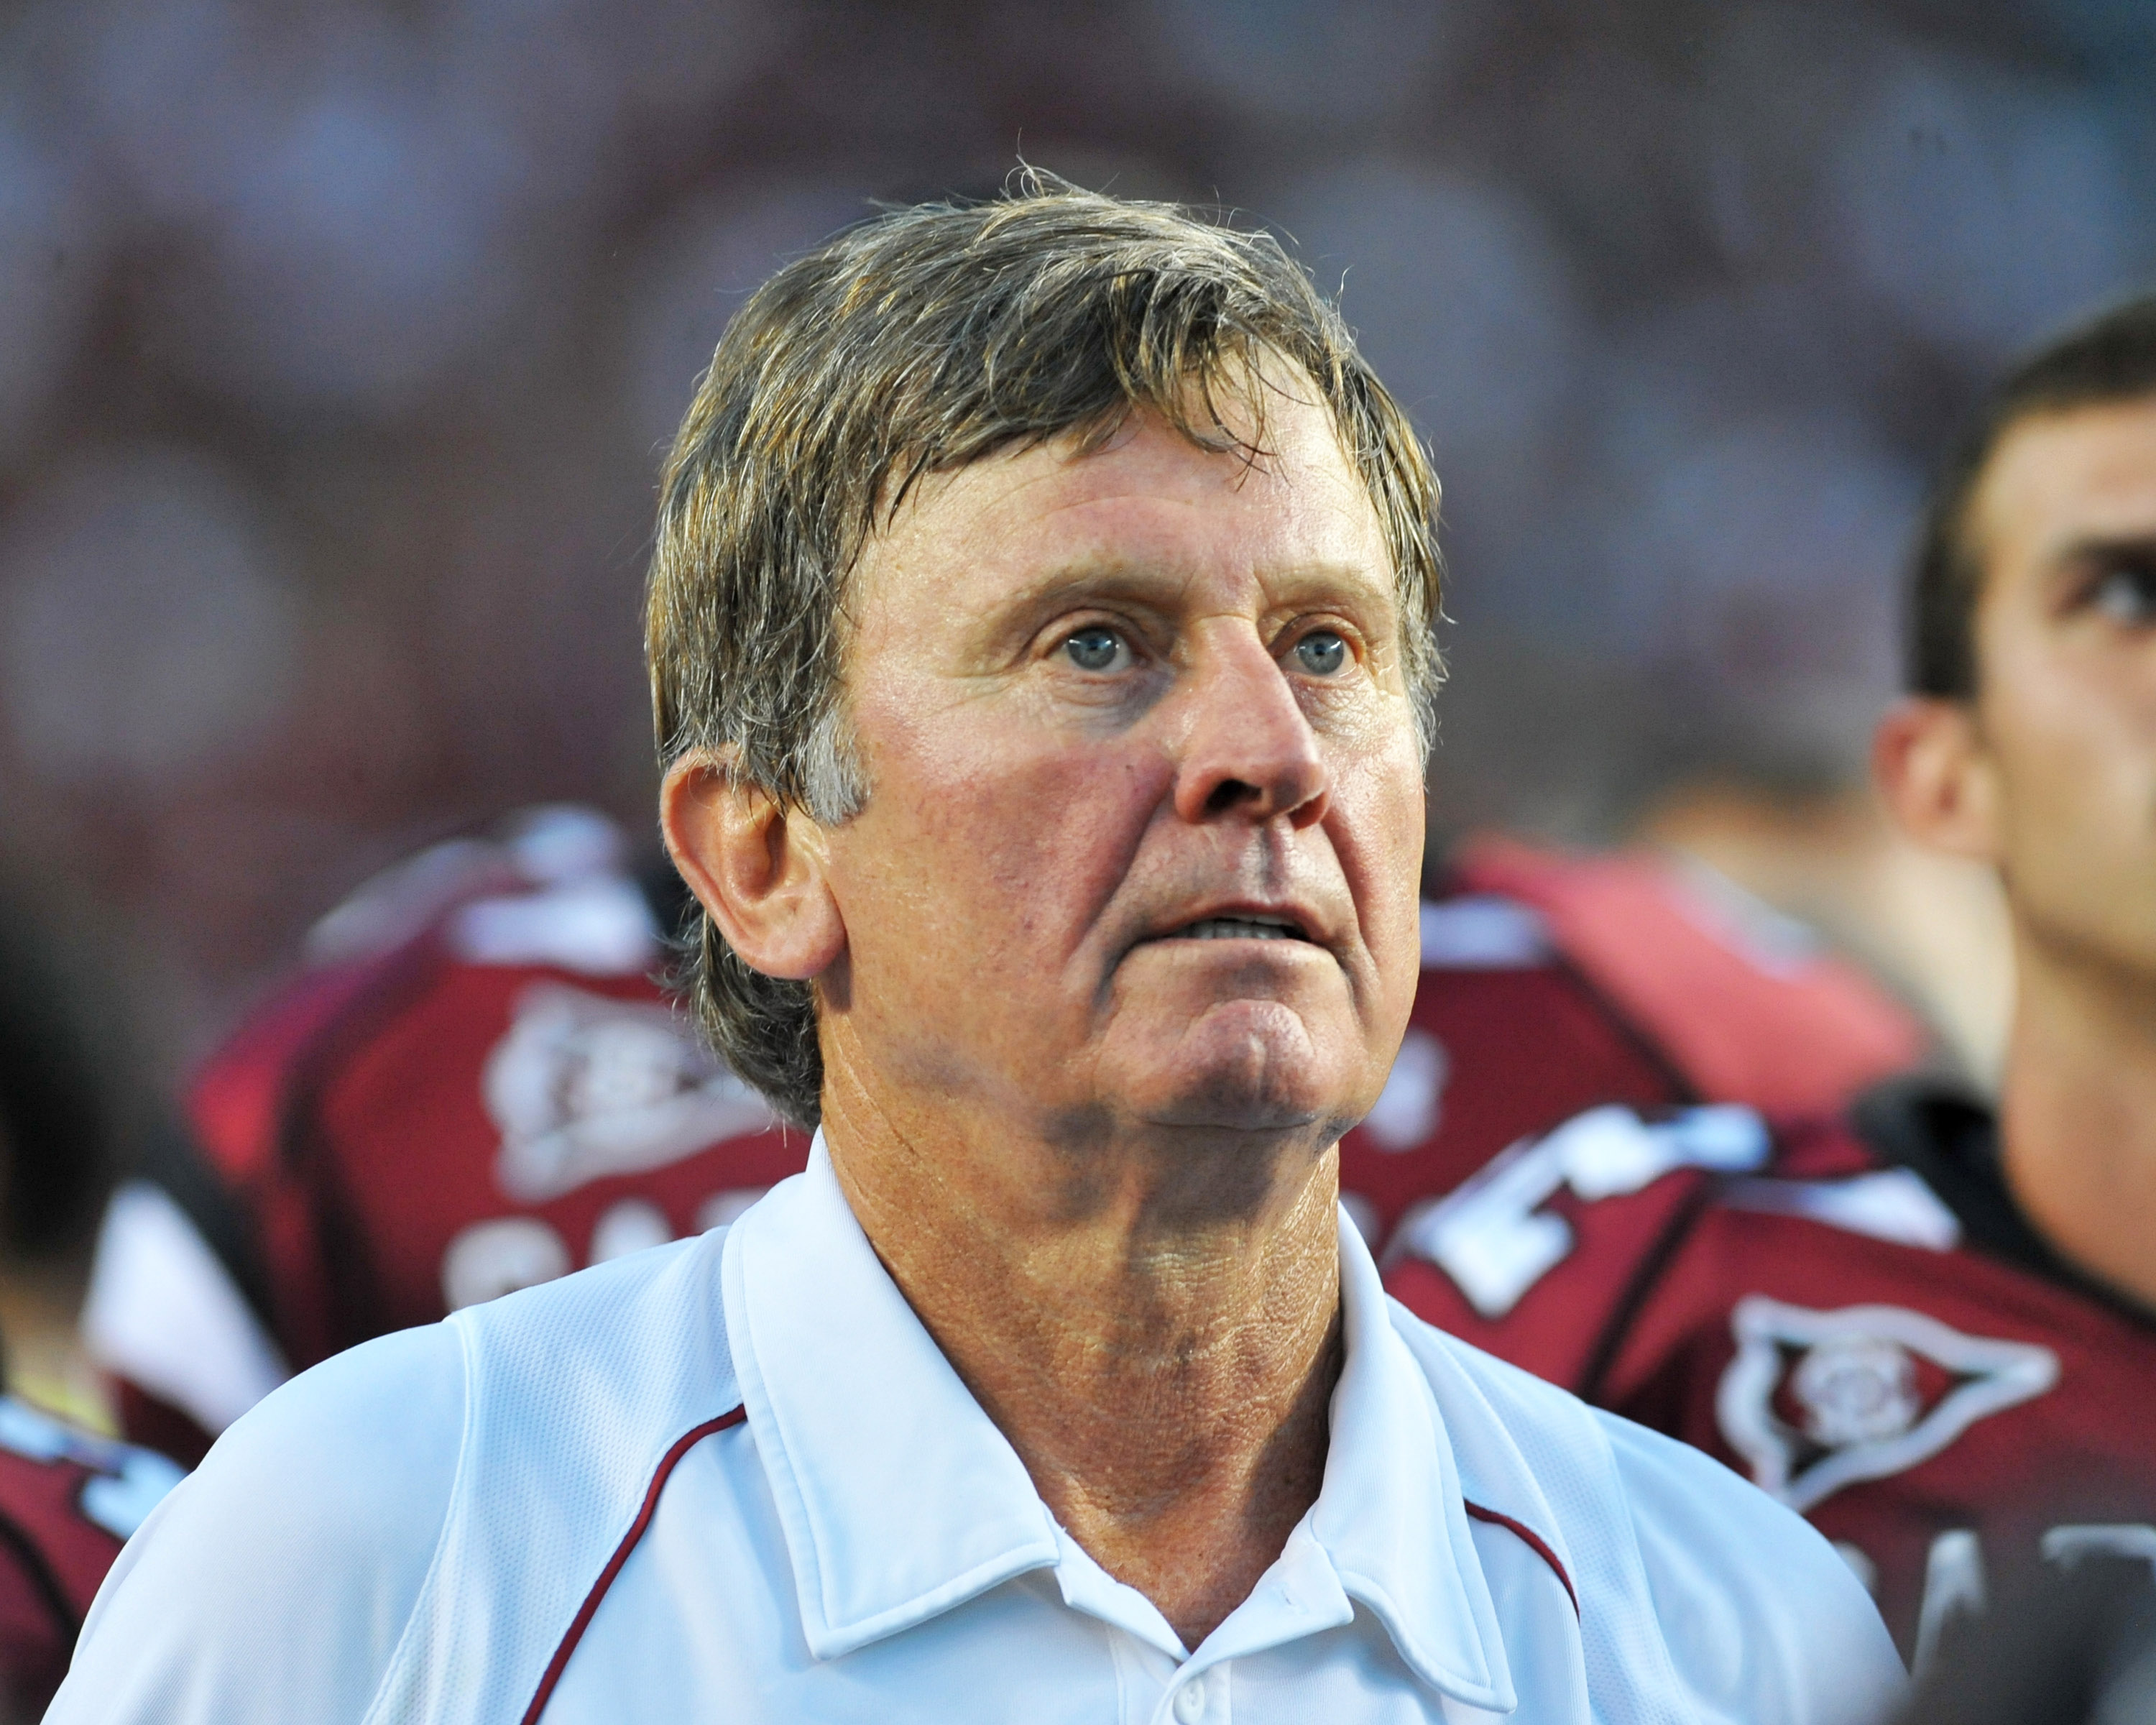 COLUMBIA, SC - OCTOBER 9: Coach Steve Spurrier of the South Carolina Gamecocks checks the scoreboard after play against the Alabama Crimson Tide October 9, 2010 at Williams-Brice Stadium in Columbia, South Carolina.  (Photo by Al Messerschmidt/Getty Image